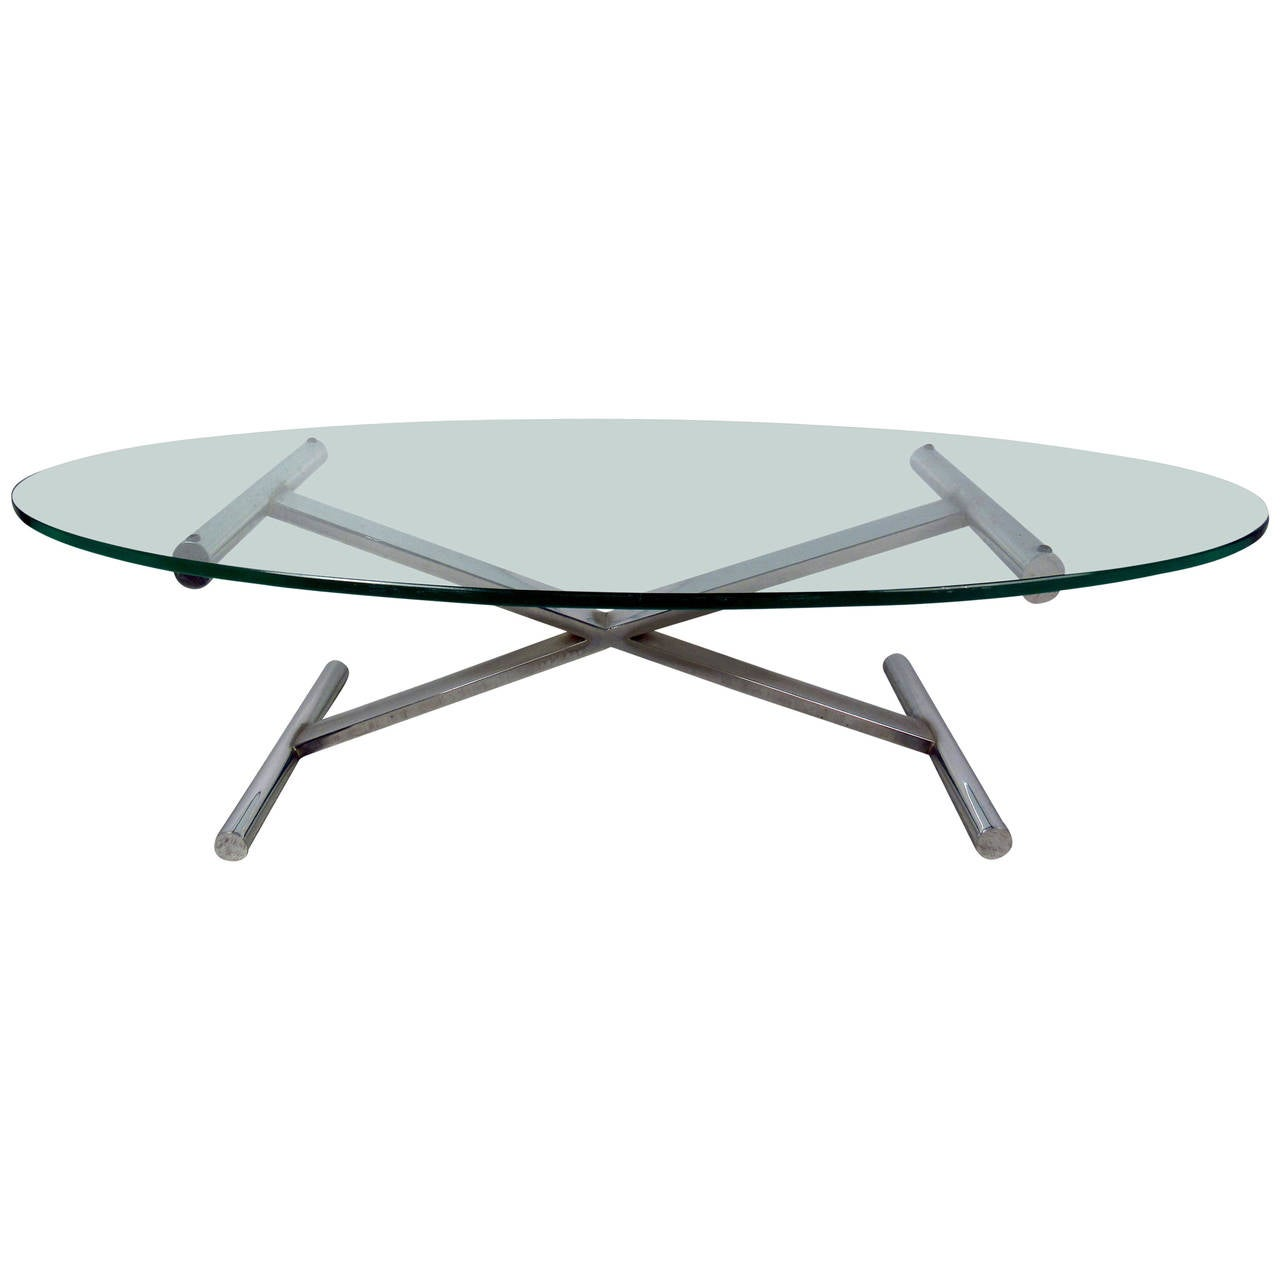 Oval shaped glass top coffee table with chrome base for sale at 1stdibs Bases for coffee tables